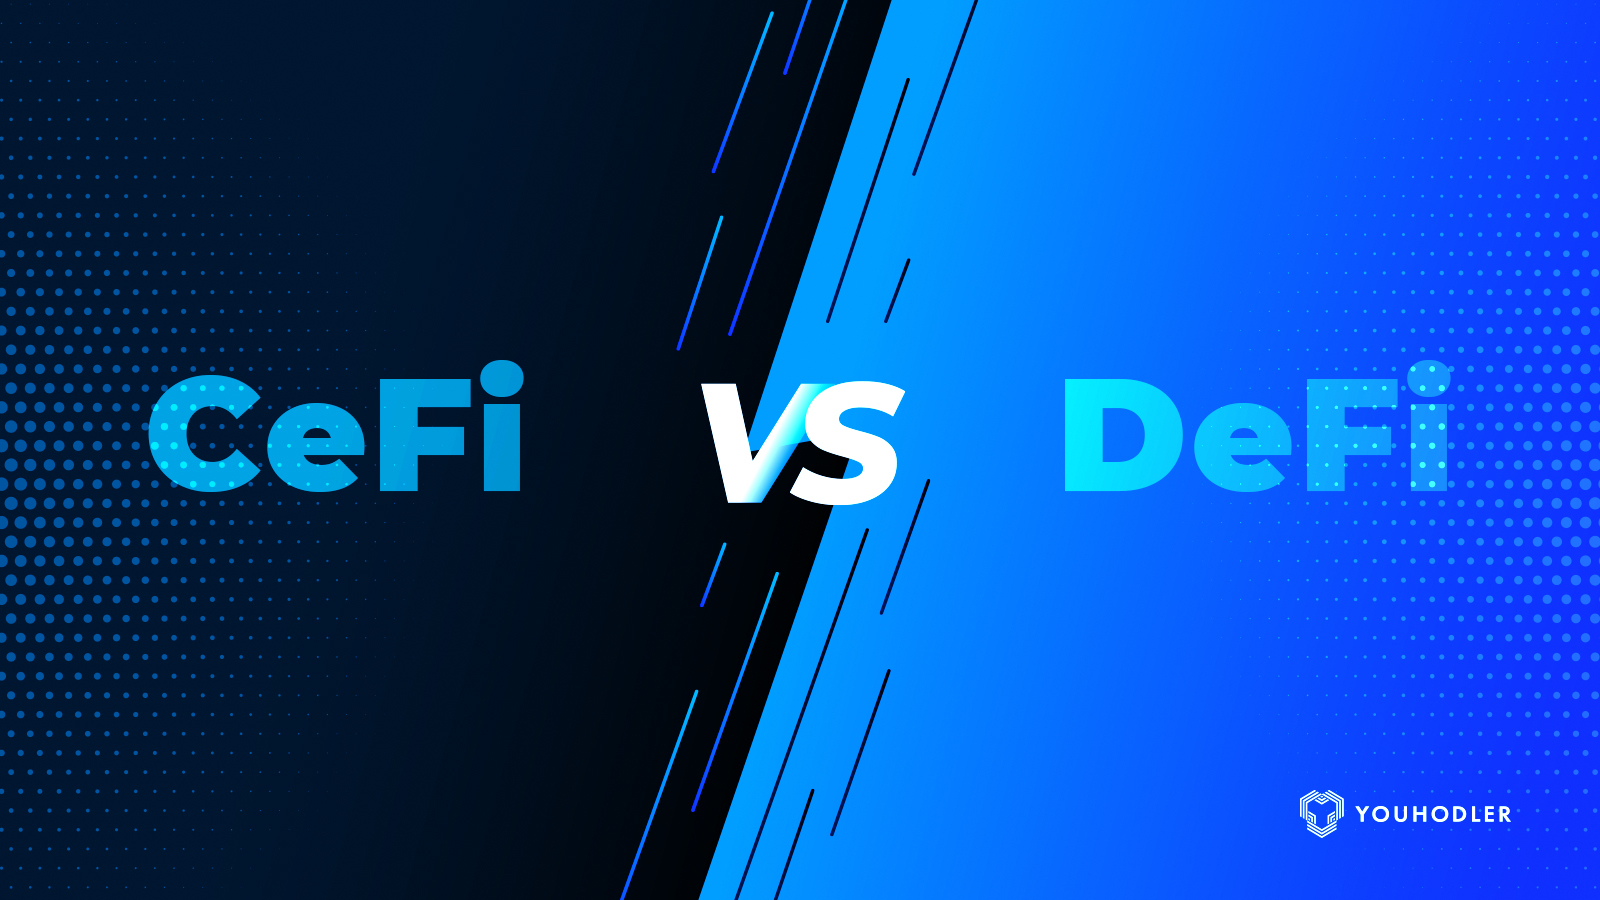 Pros and cons of Centralized Finance (CeFi) and Decentralized Finance (DeFi)